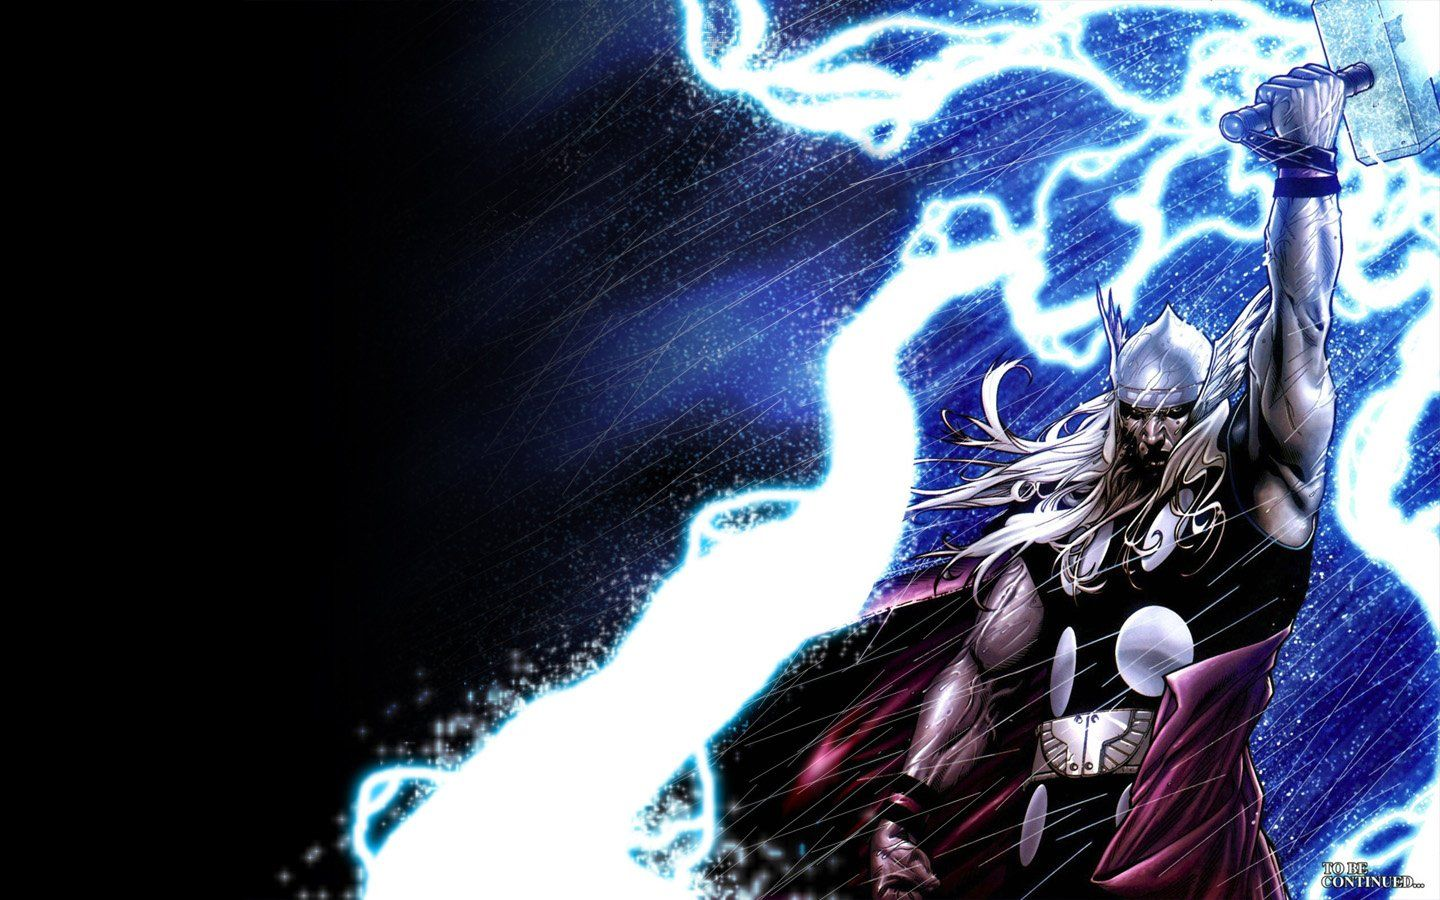 Thor mjolnir 4k wallpapers top free thor mjolnir 4k backgrounds wallpaperaccess - Thor hammer hd pics ...